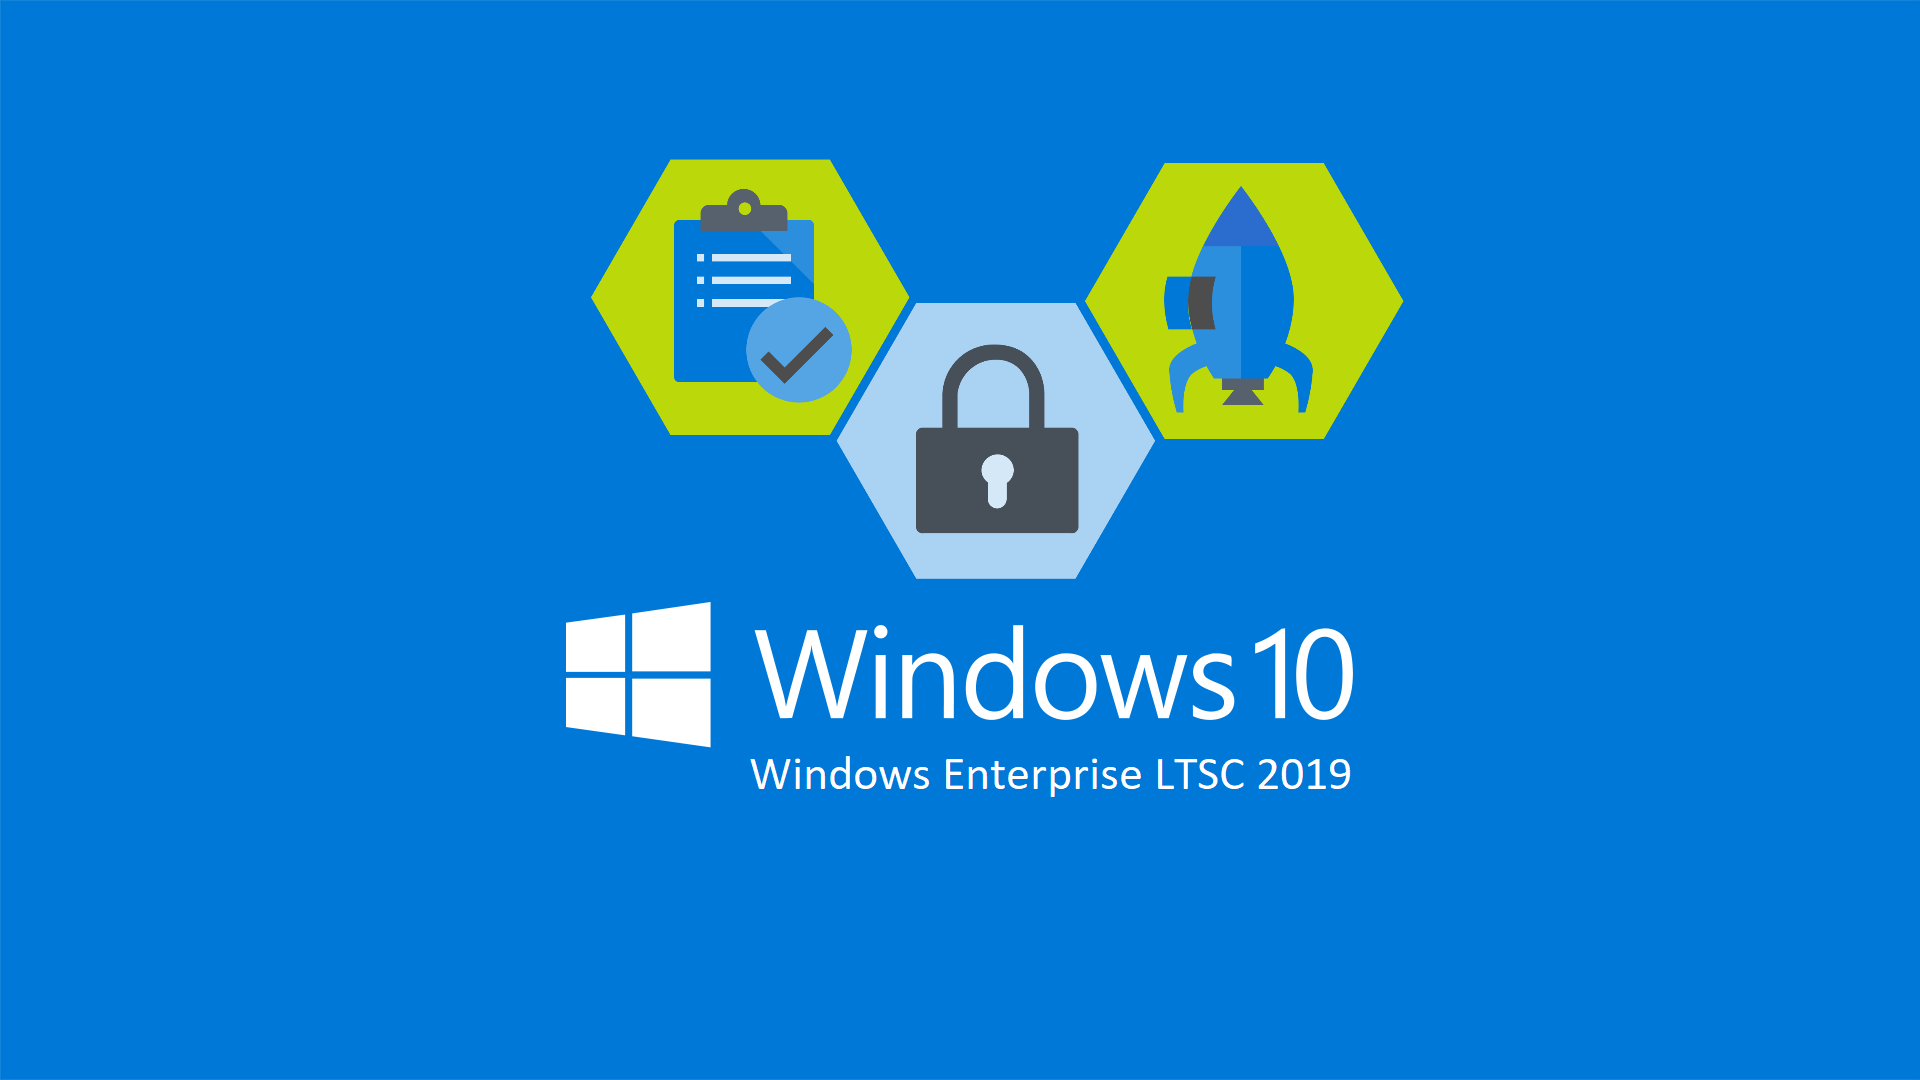 Windows 10 Enterprise LTSC 2019 – Scenari di adozione | ICT